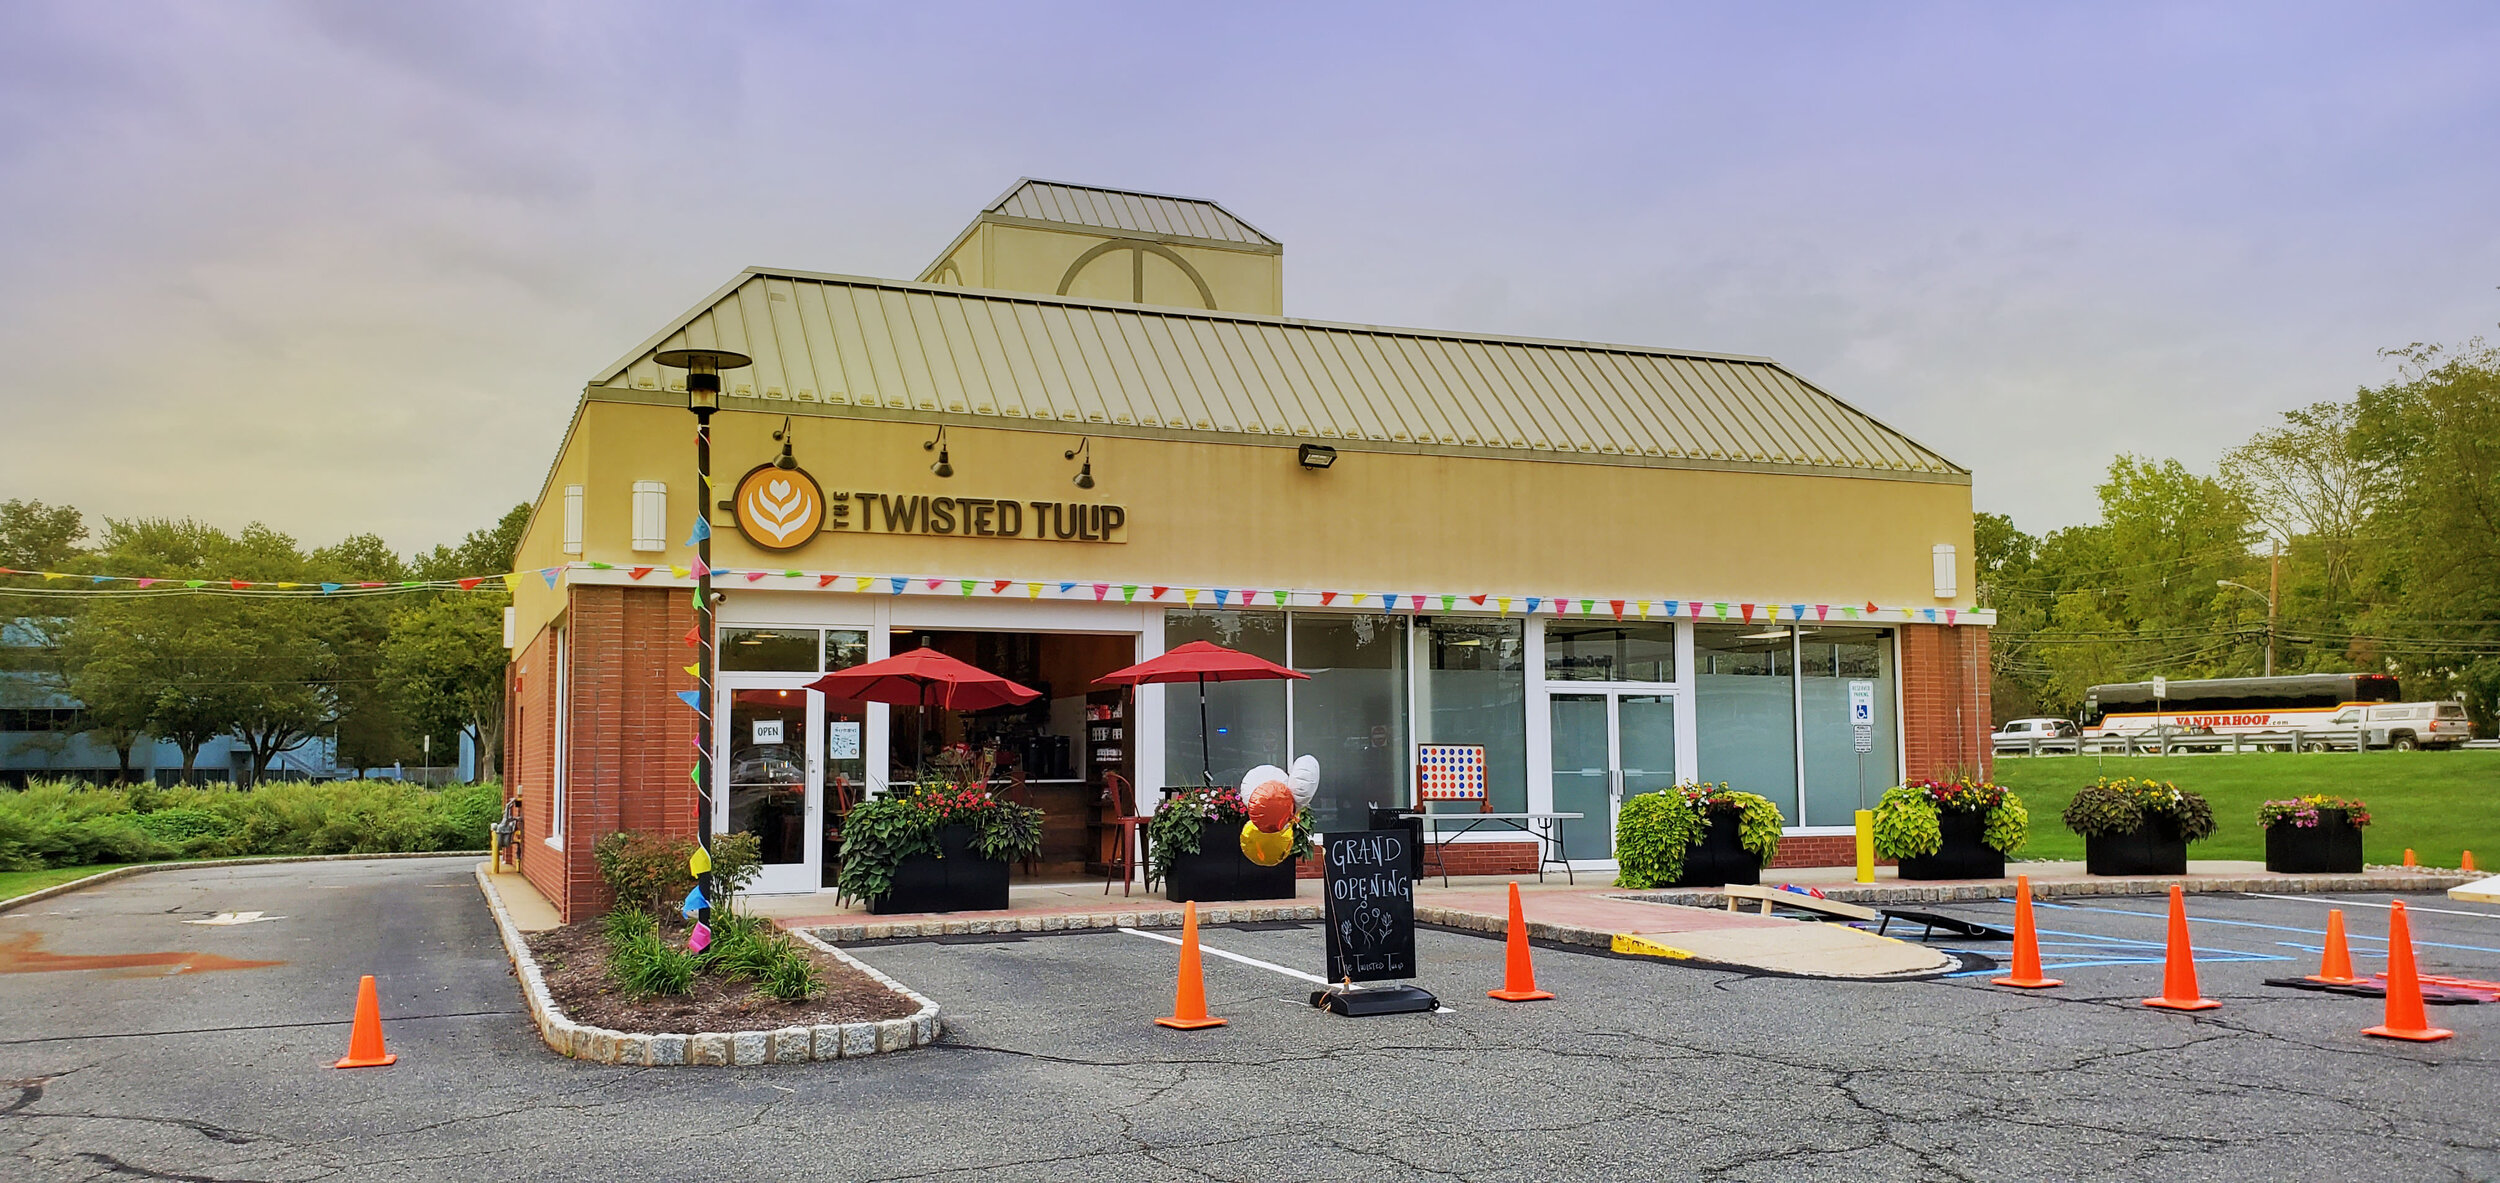 The Twisted Tulip #livingstonnj - The Twisted Tulip is a one of a kind coffee shop with so many kinds of snacks, teas, and some of the most incredible coffee you will find in New Jersey. Essex County and Livingston, NJ has truly stumbled across an incredible gem.